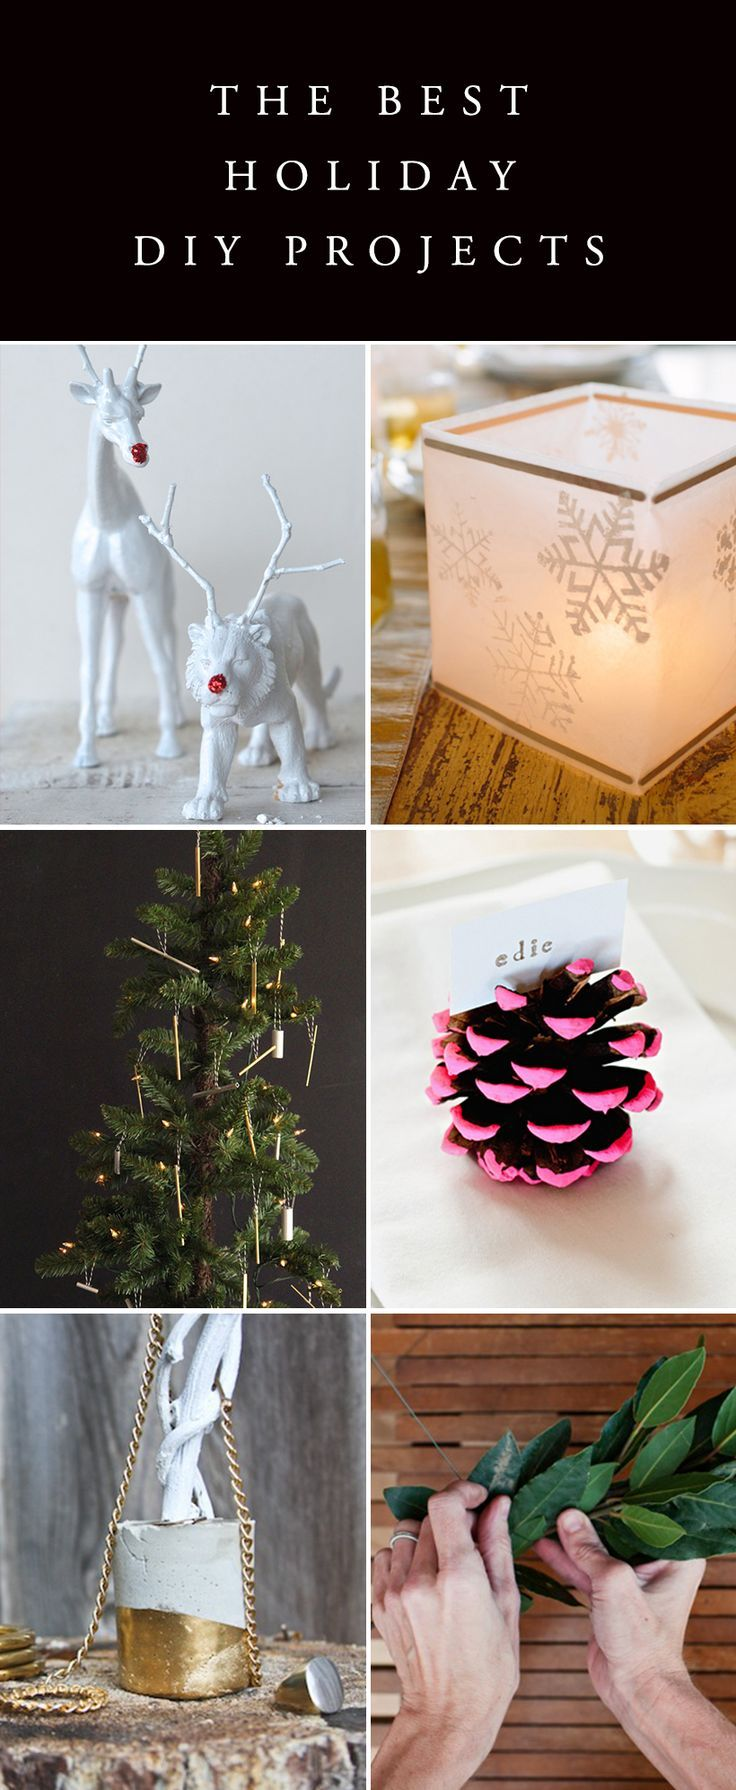 Tons of fun and easy Holiday DIY